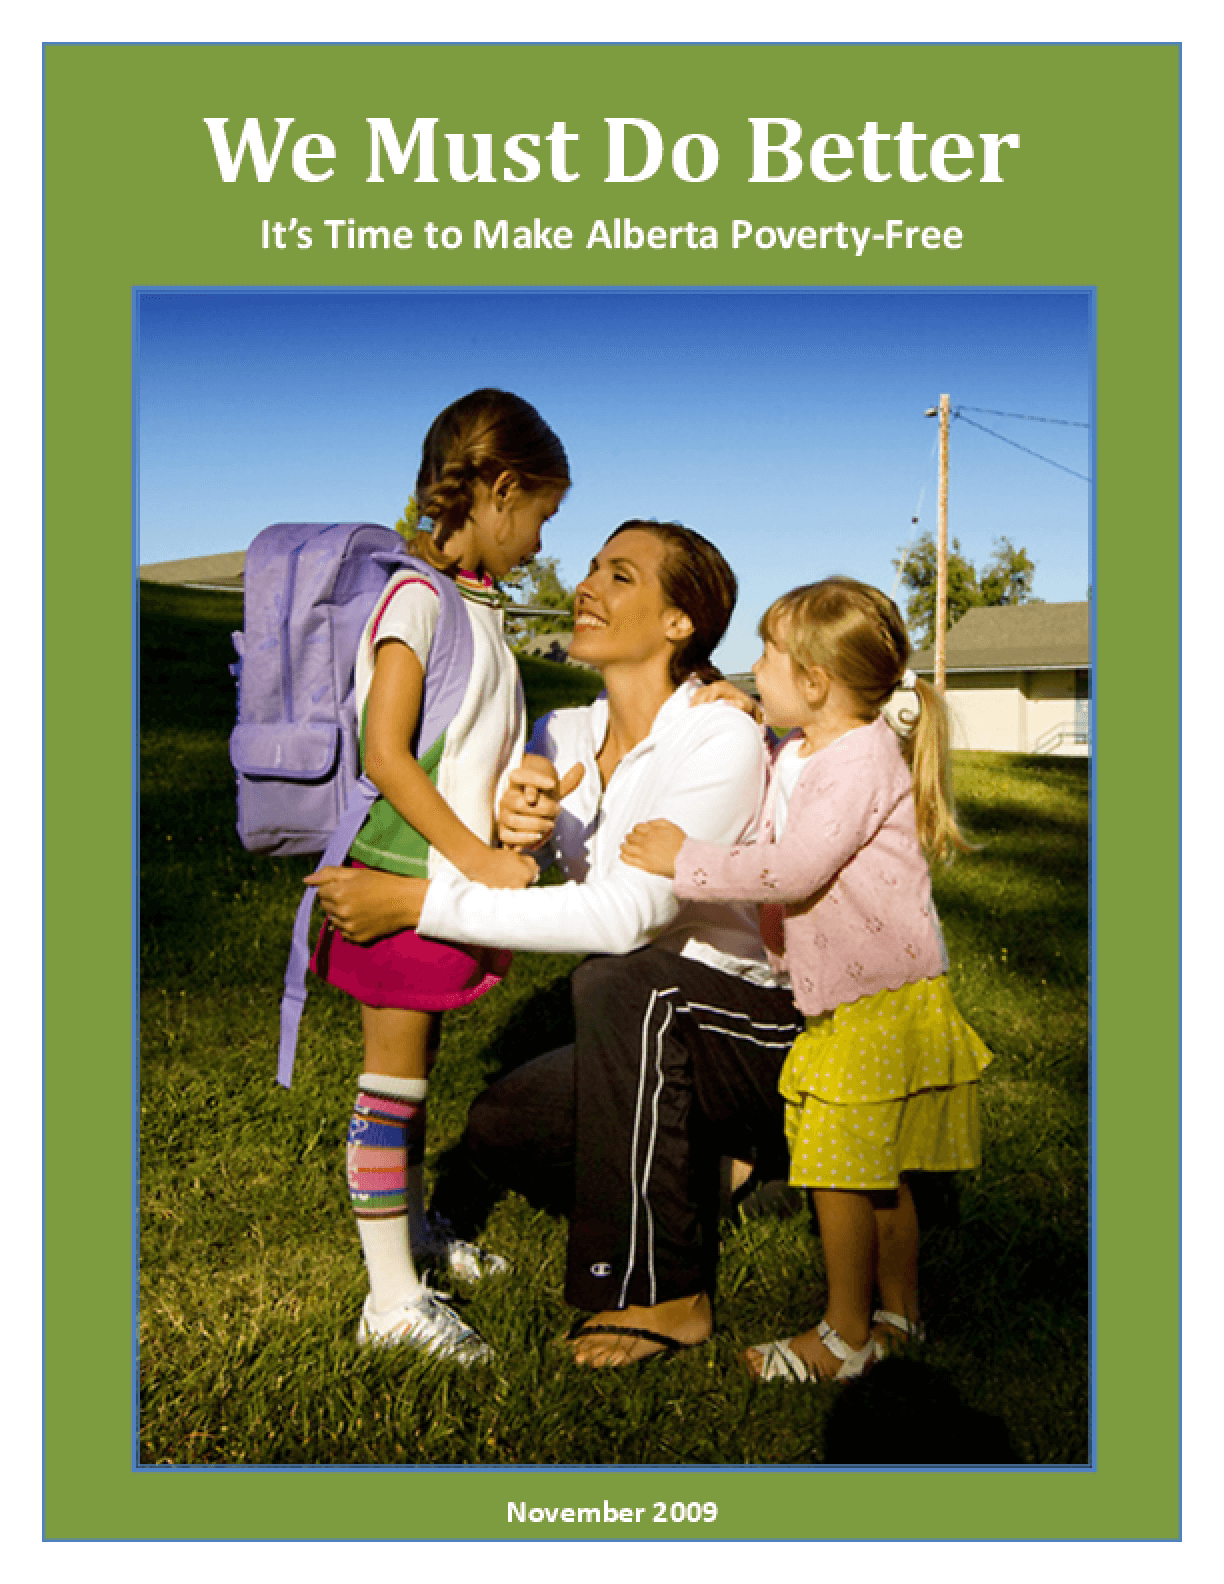 We Must Do Better: It's Time to Make Alberta Poverty-Free